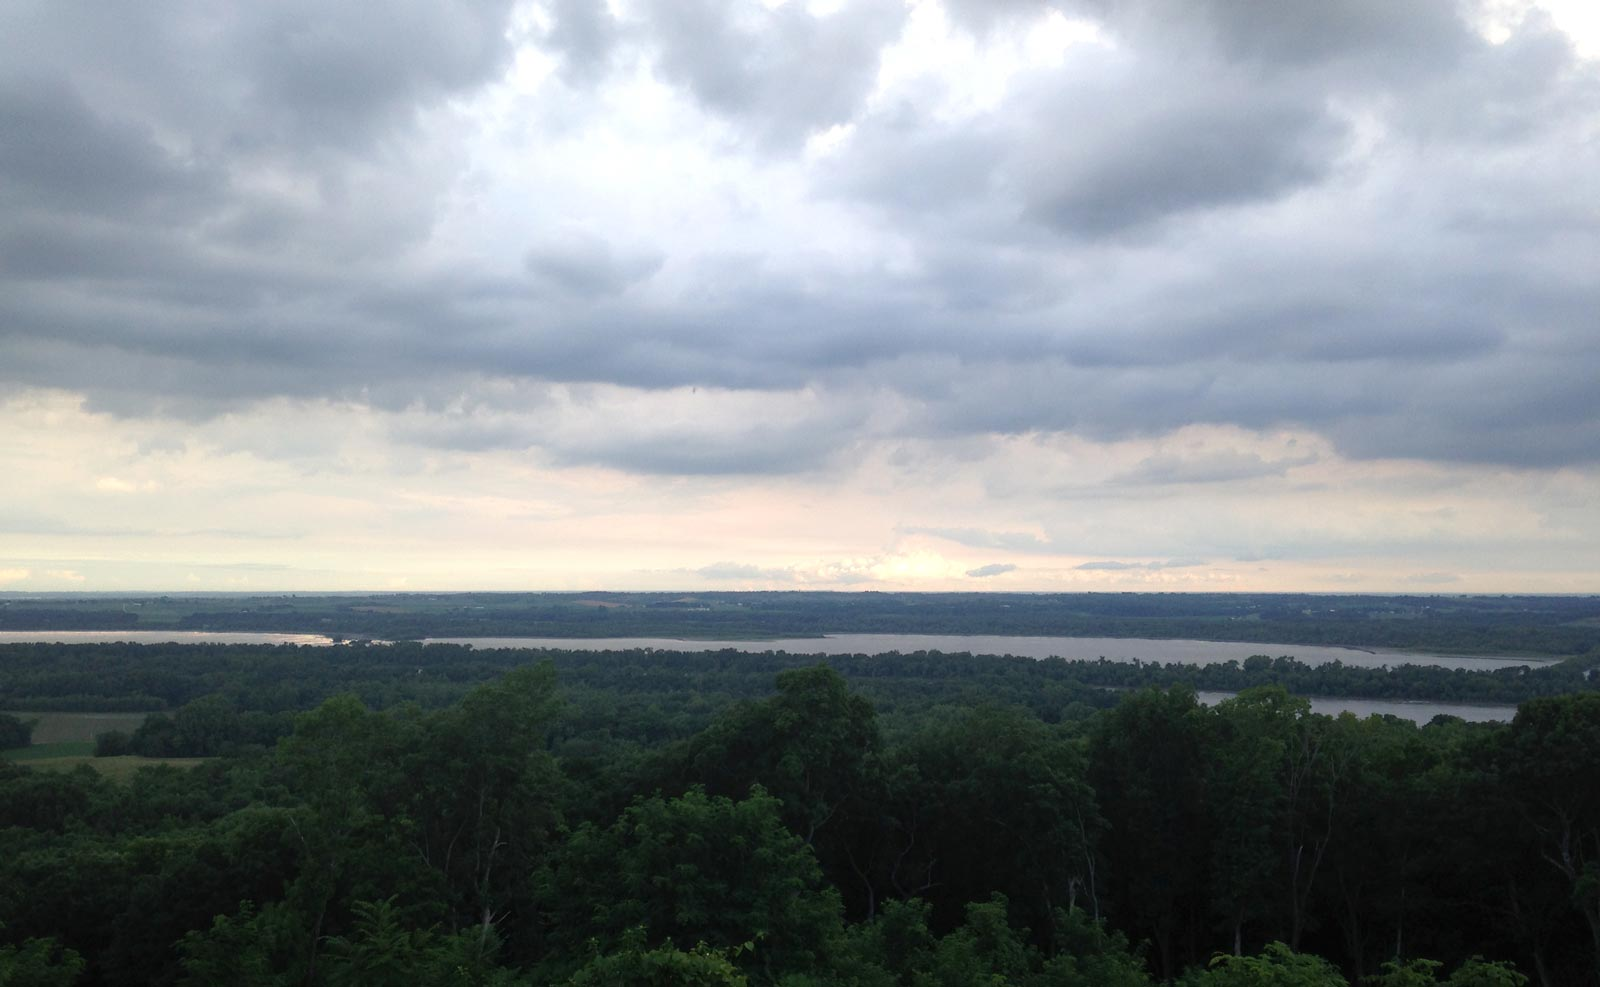 Mississippi River overlook at Pere Marquette State Park, Grafton, Illinois